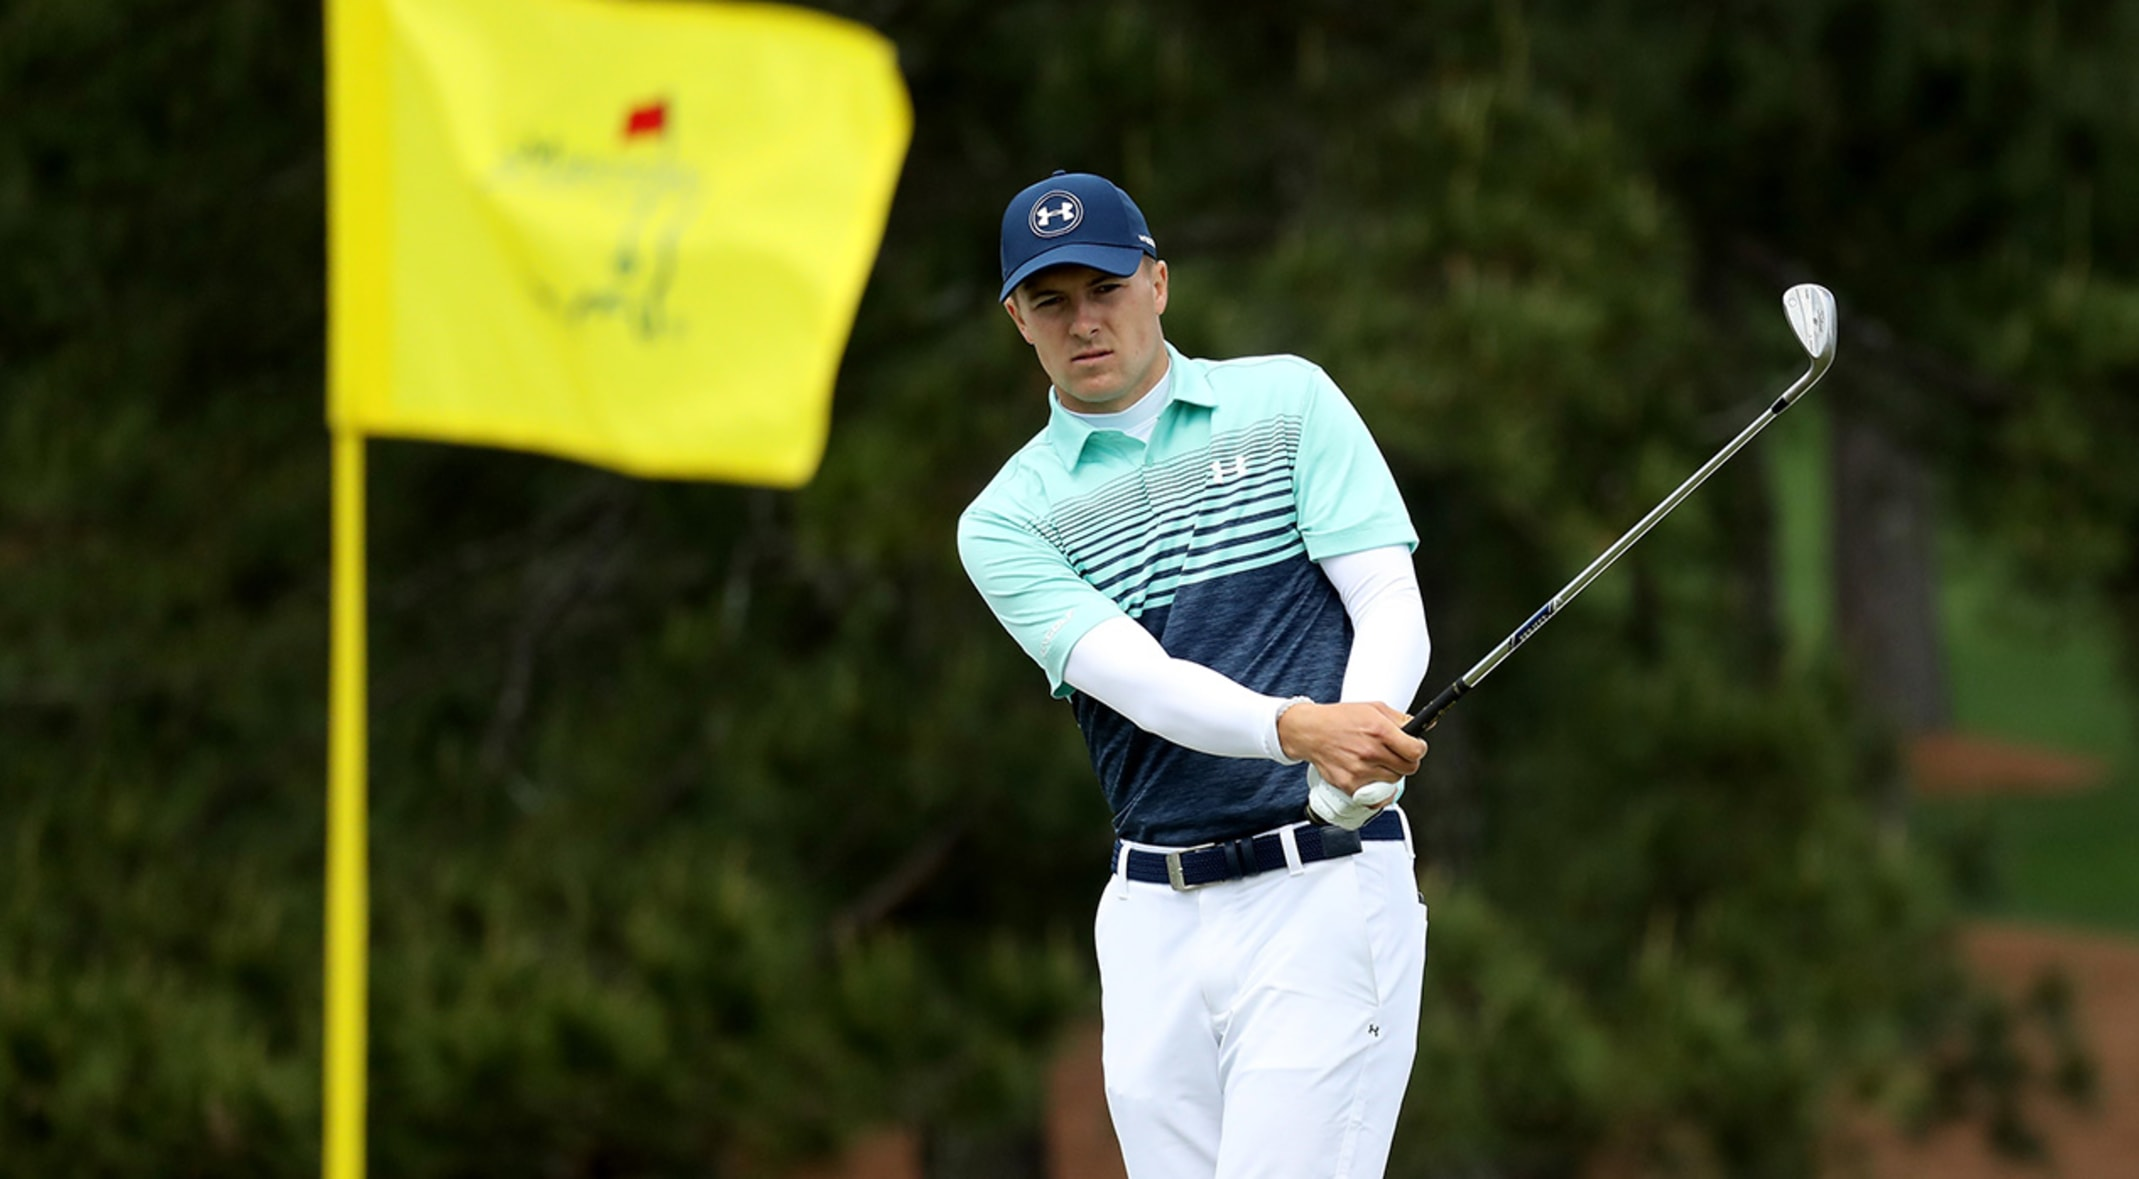 038b535f7f8 Jordan Spieth has competed in three prior Masters, and he's never  finished worse